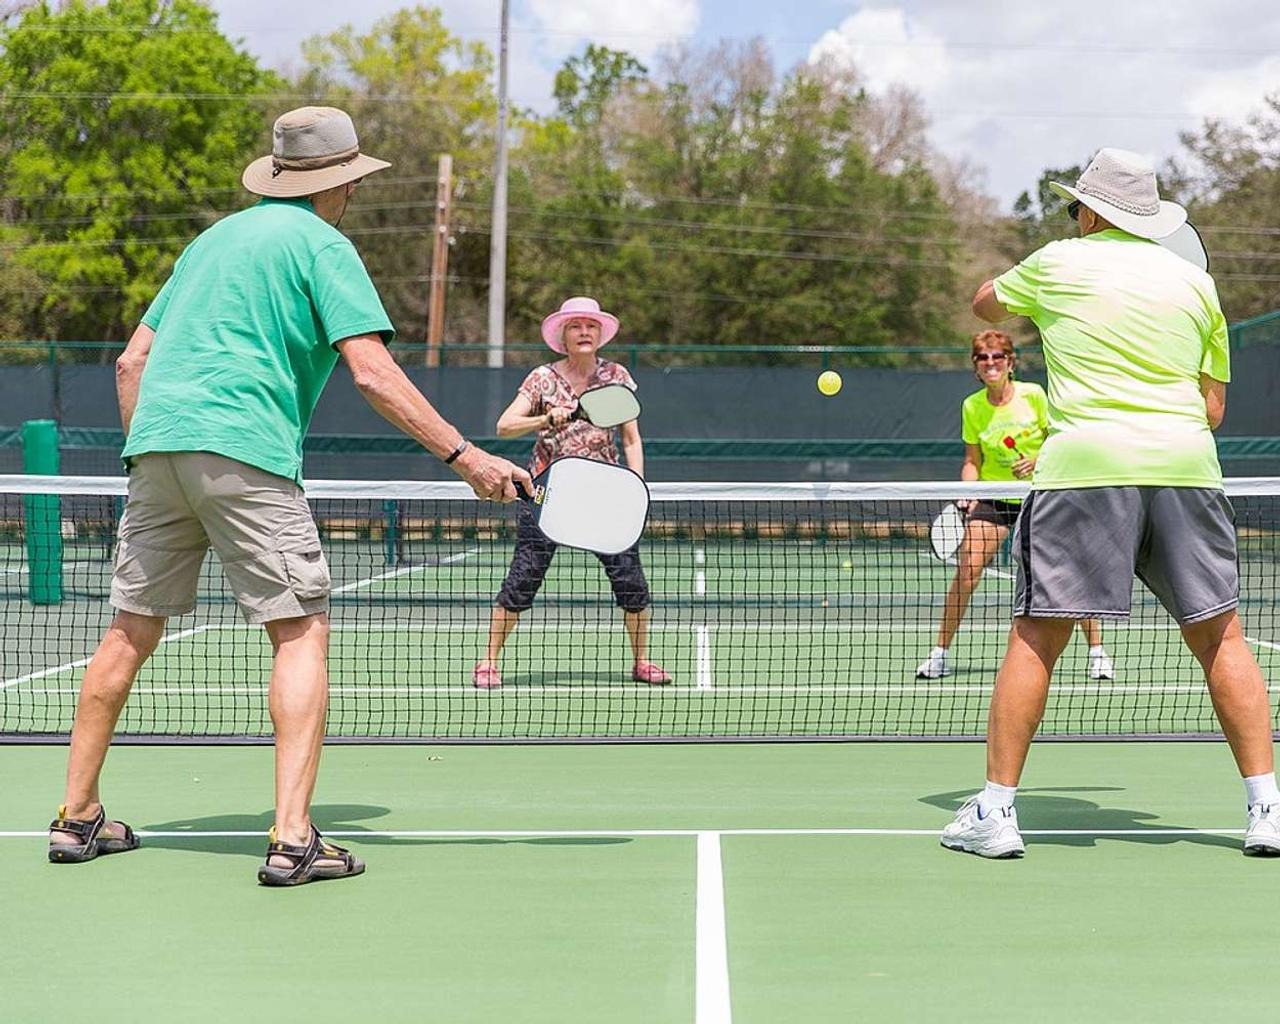 Pickleball: The racquet sport experiencing a pandemic boom